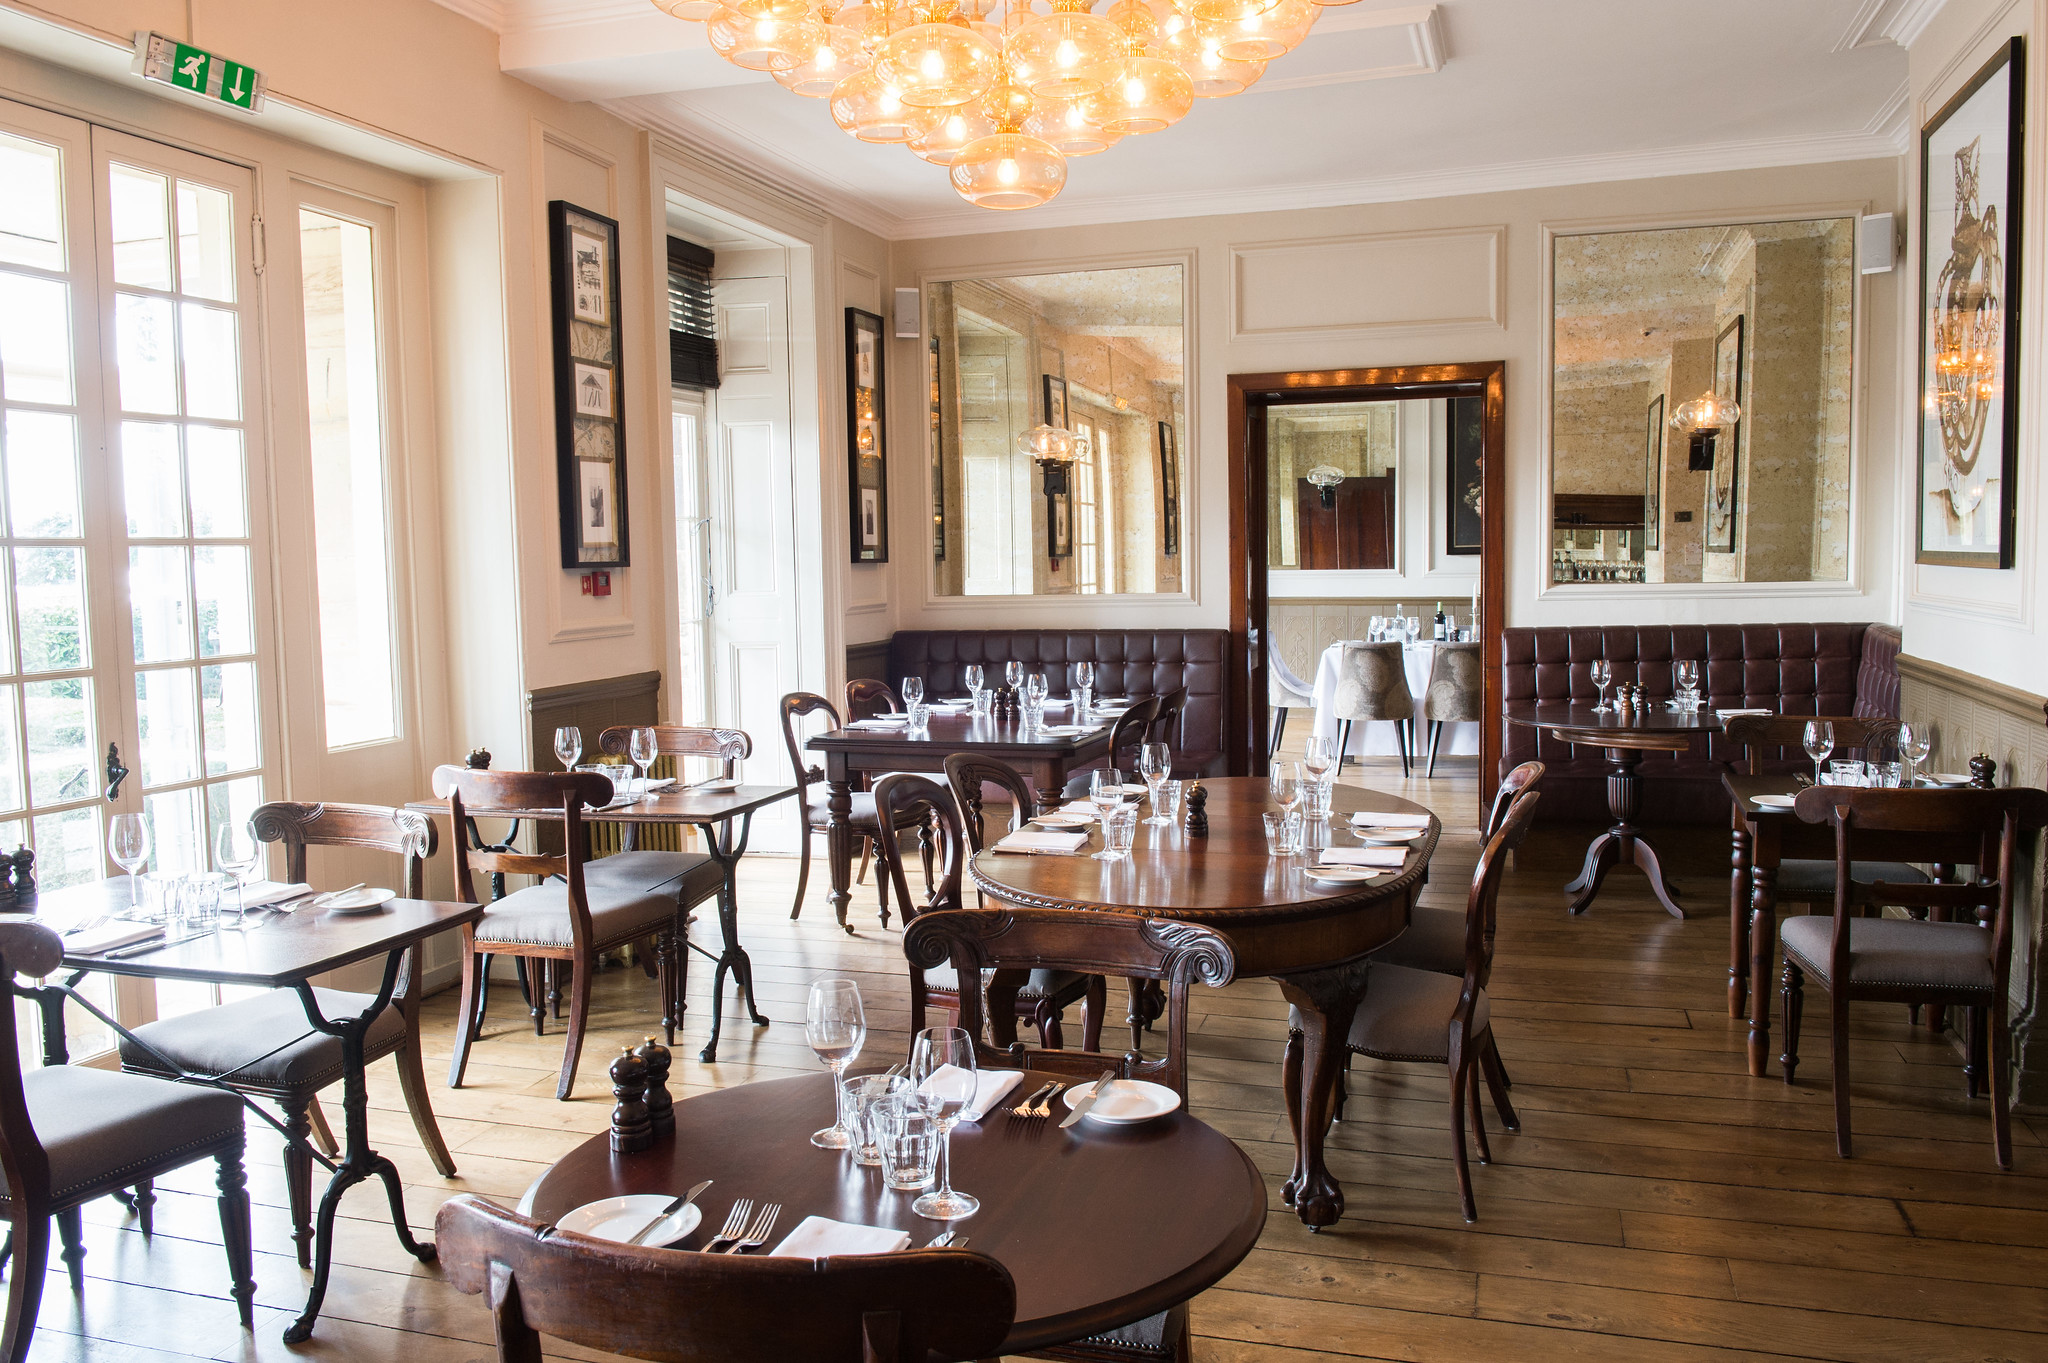 Image of Bistro du Vin at Hotel du Vin Tunbridge Wells